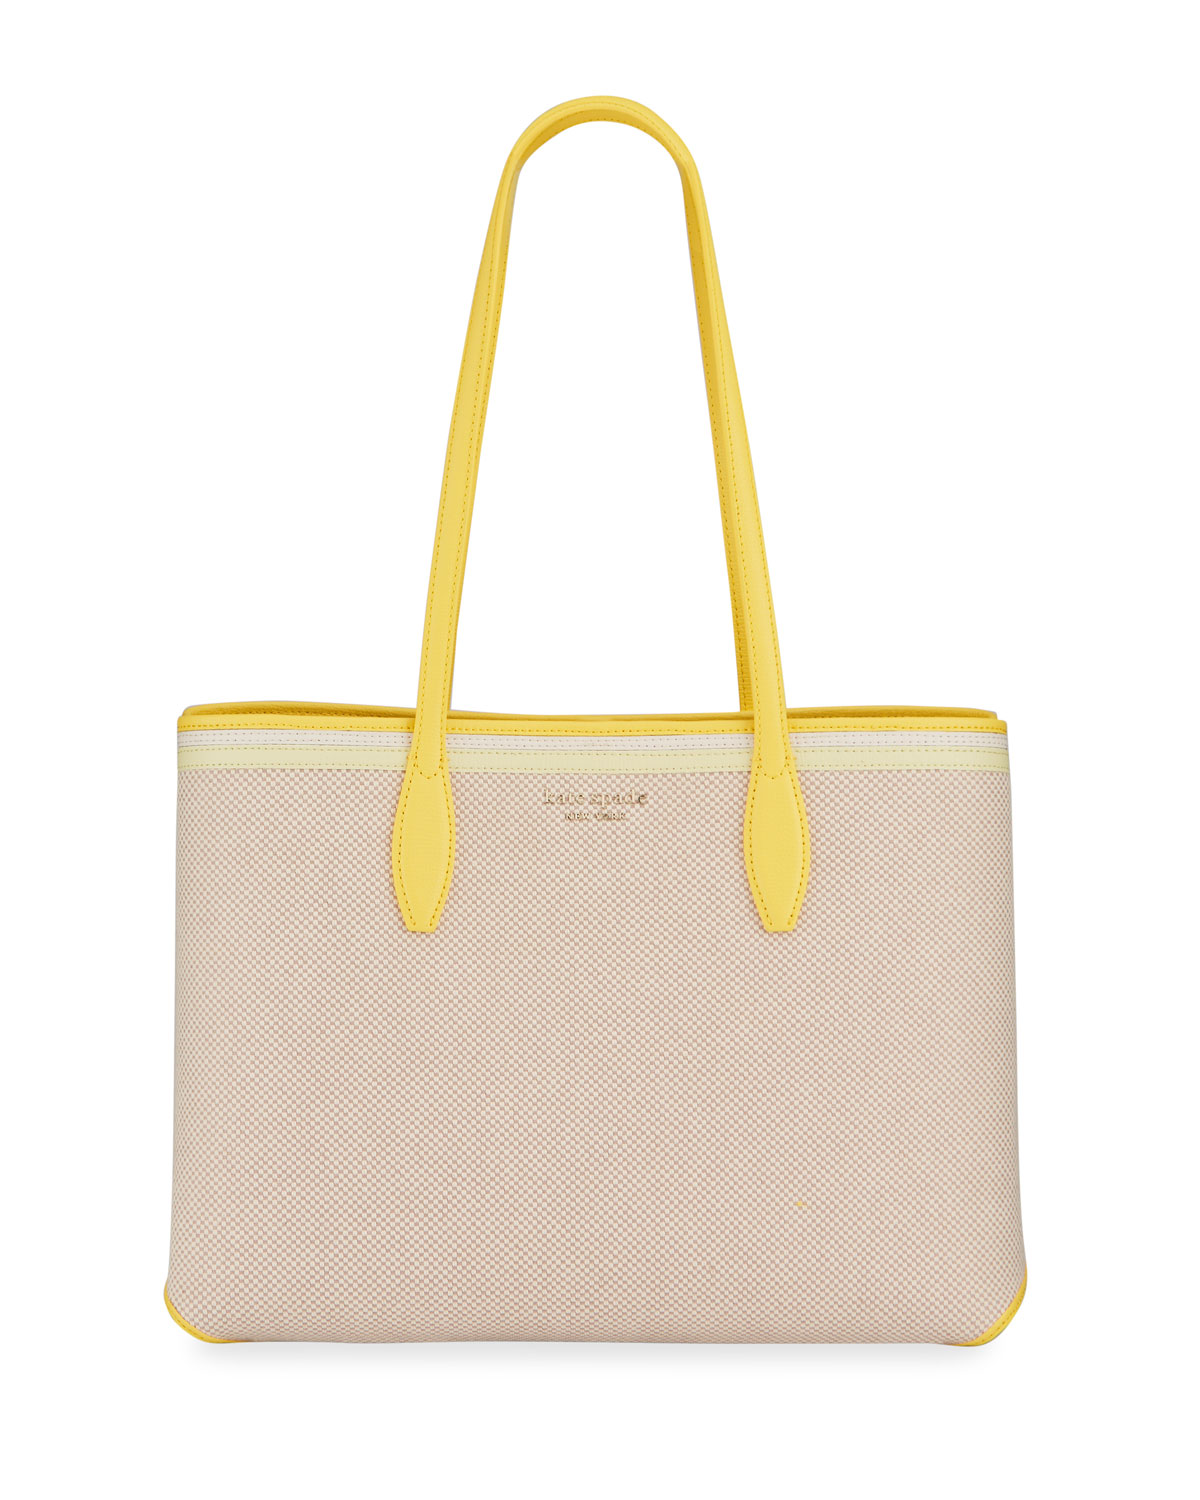 Kate Spade ALL DAY CANVAS LARGE SHOPPER TOTE BAG